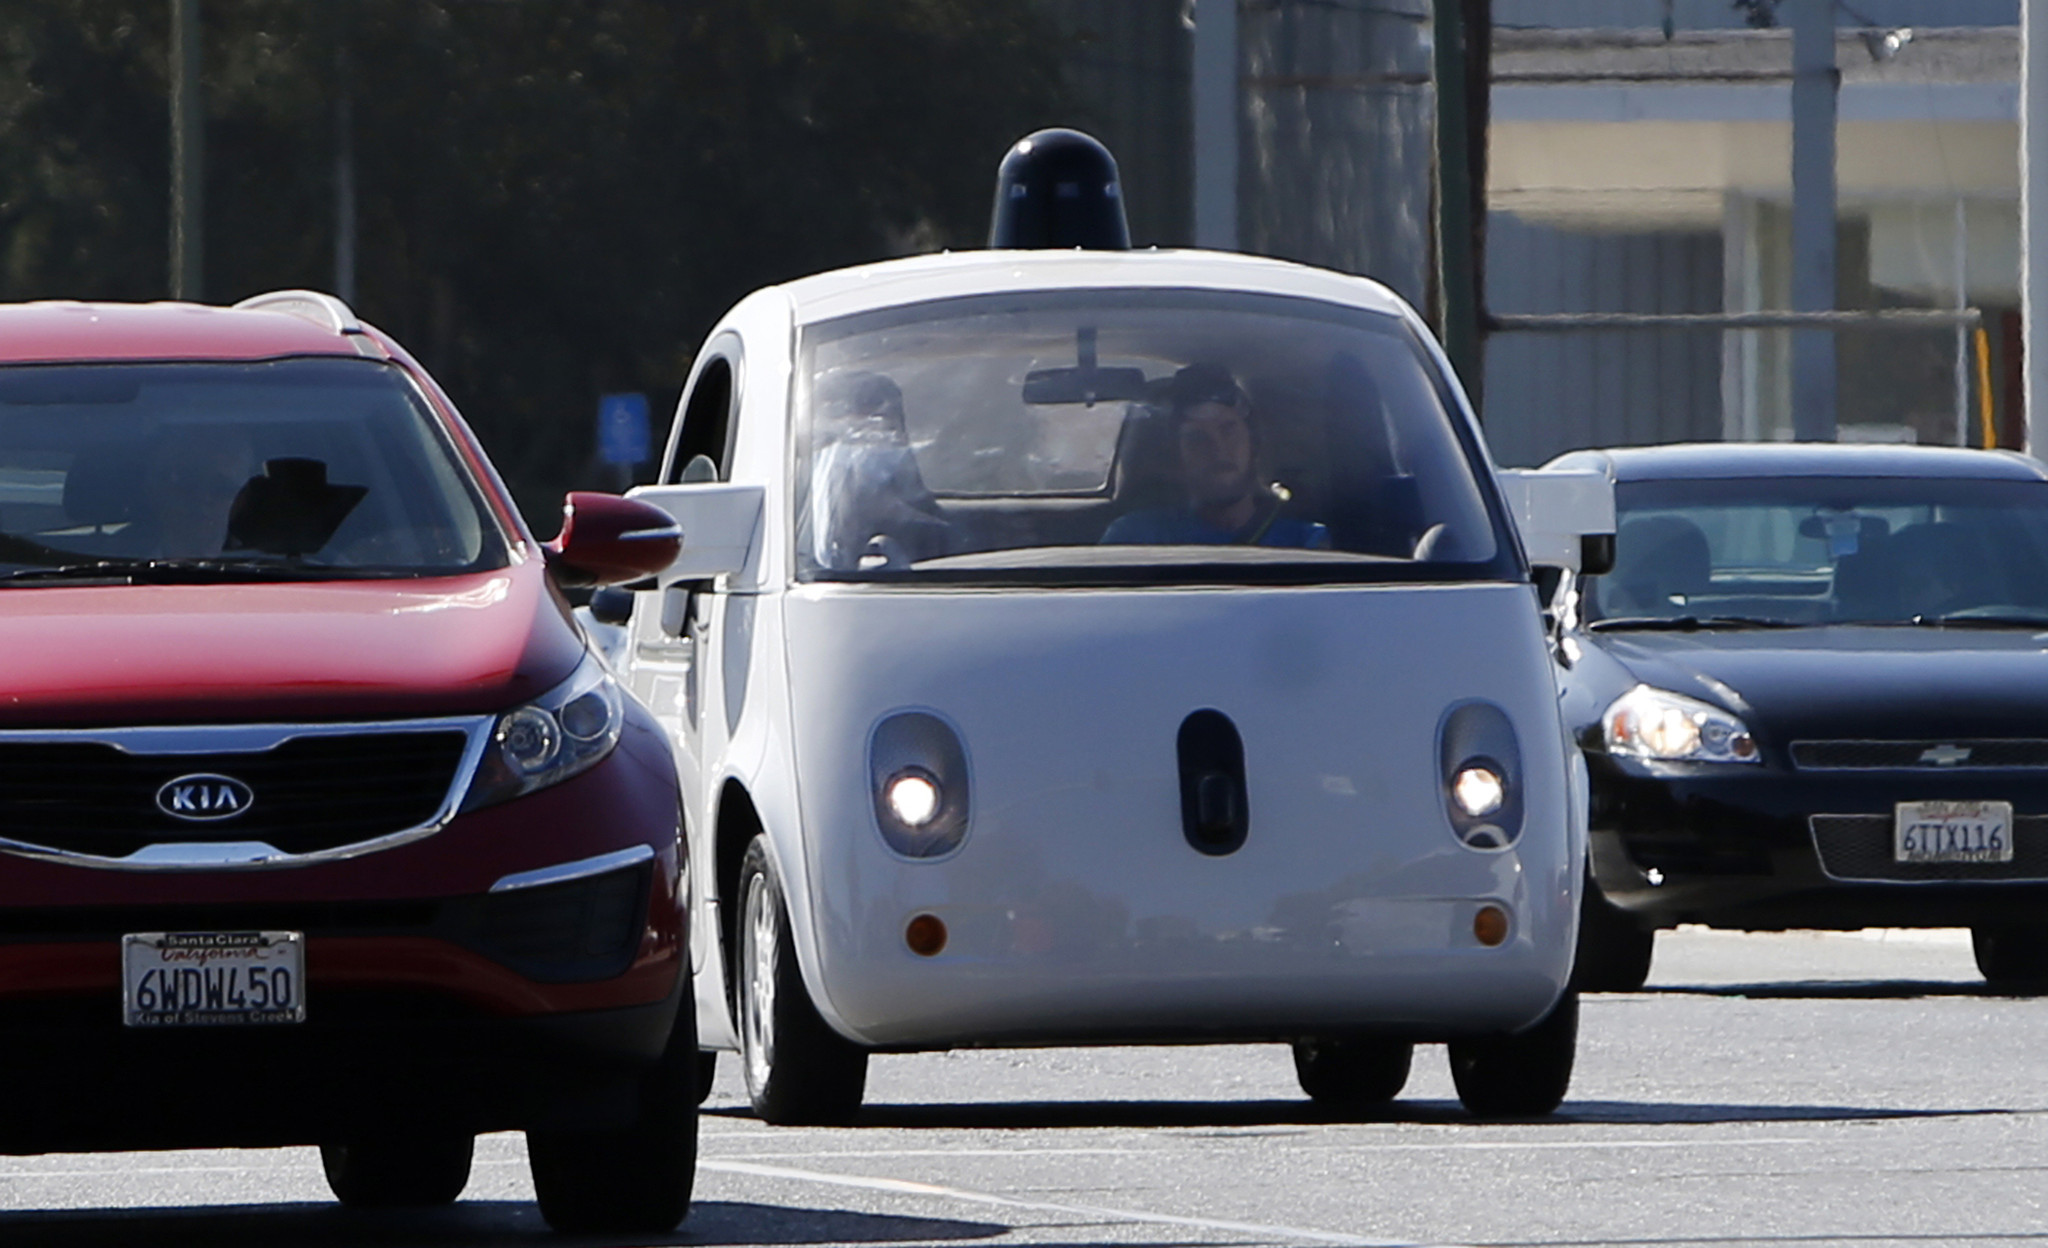 Allstate: Driverless cars could threaten our business